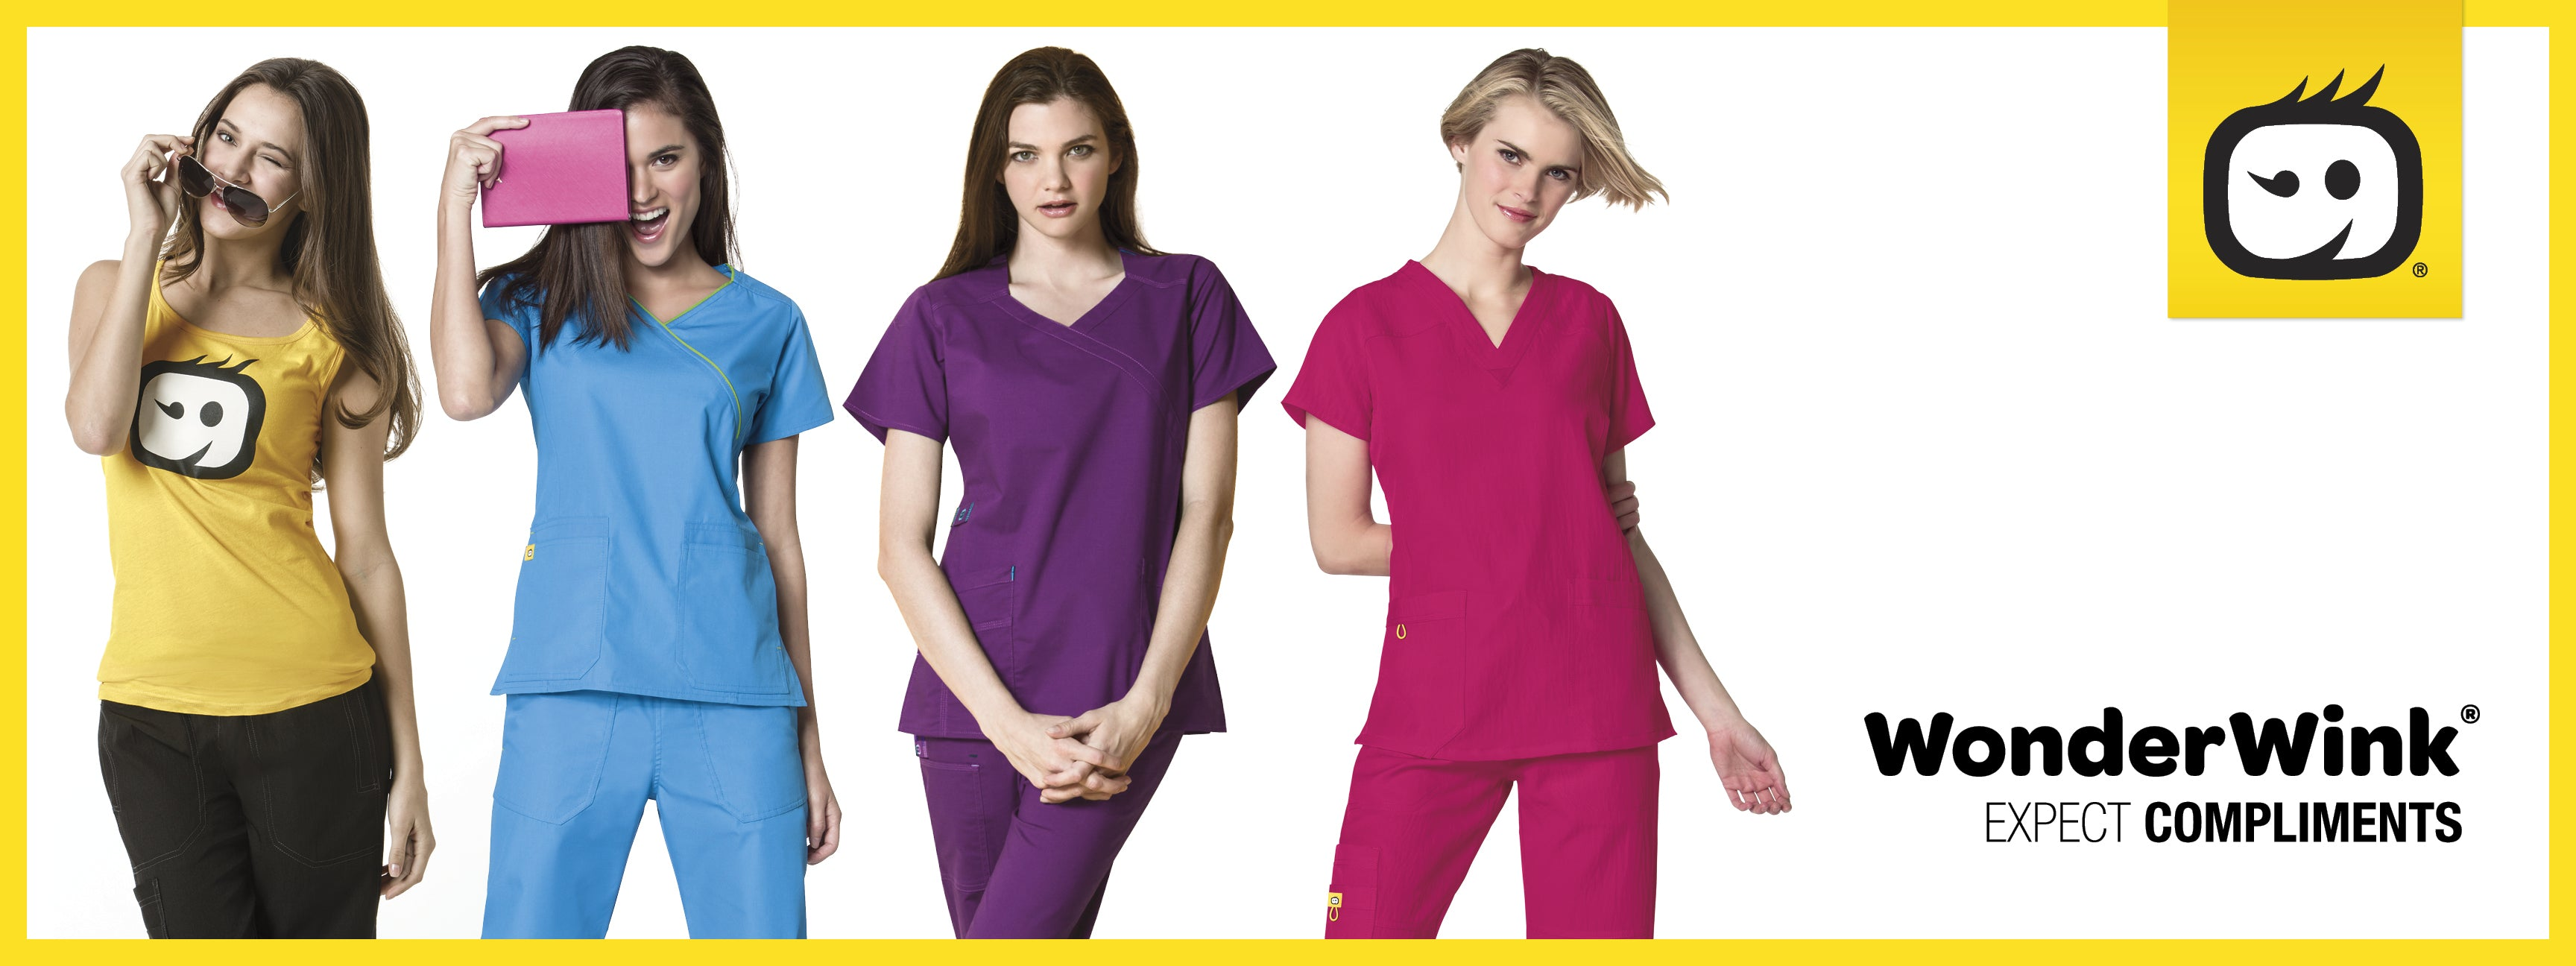 WonderWink Medical Uniforms Banner | Infectious.com.au